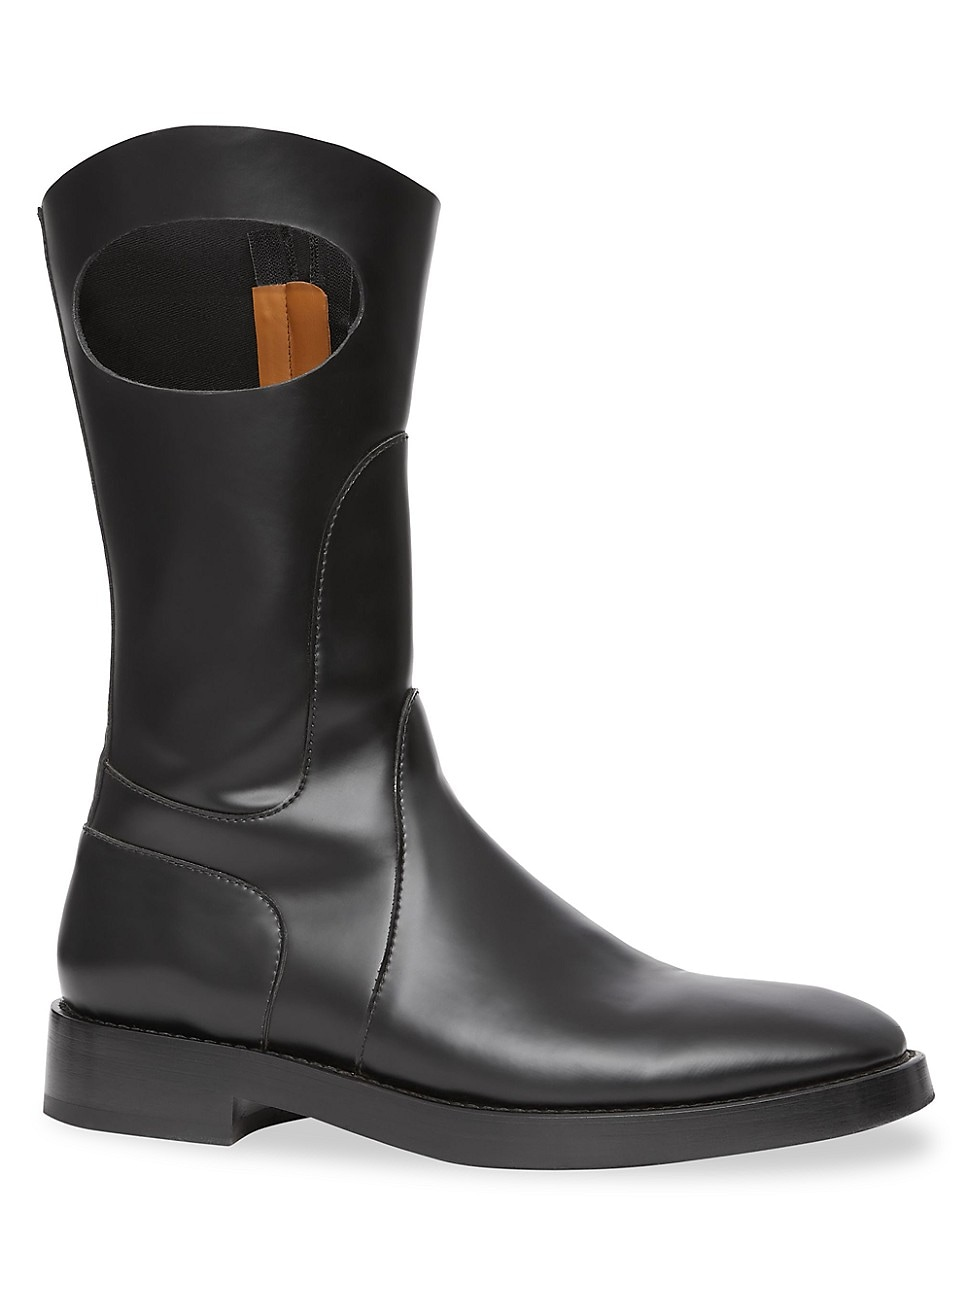 Burberry MEN'S POCKET LEATHER MID-CALF BOOTS